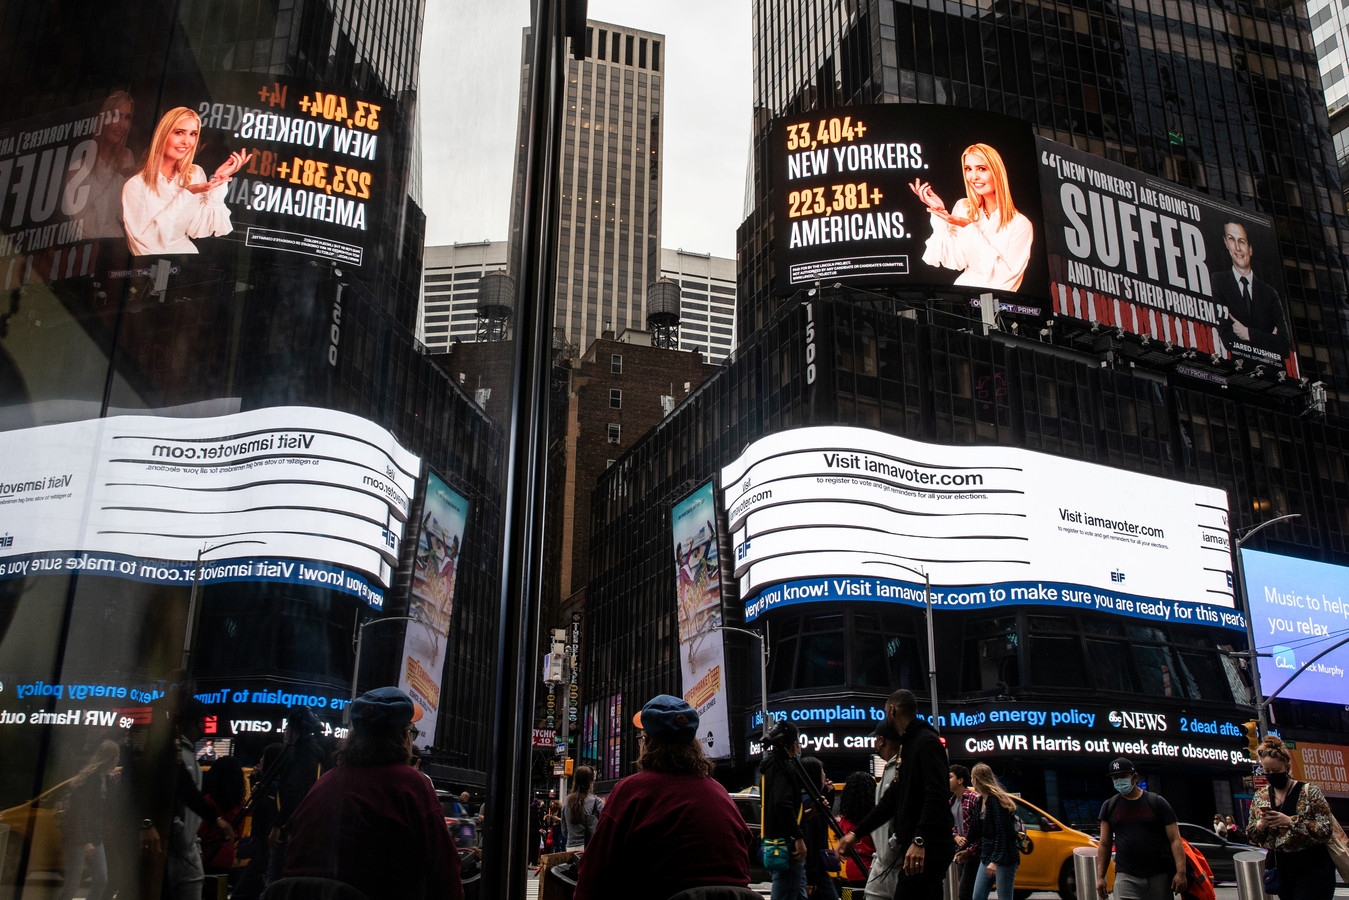 De spraakmakende reclameborden op Times Square in New York.